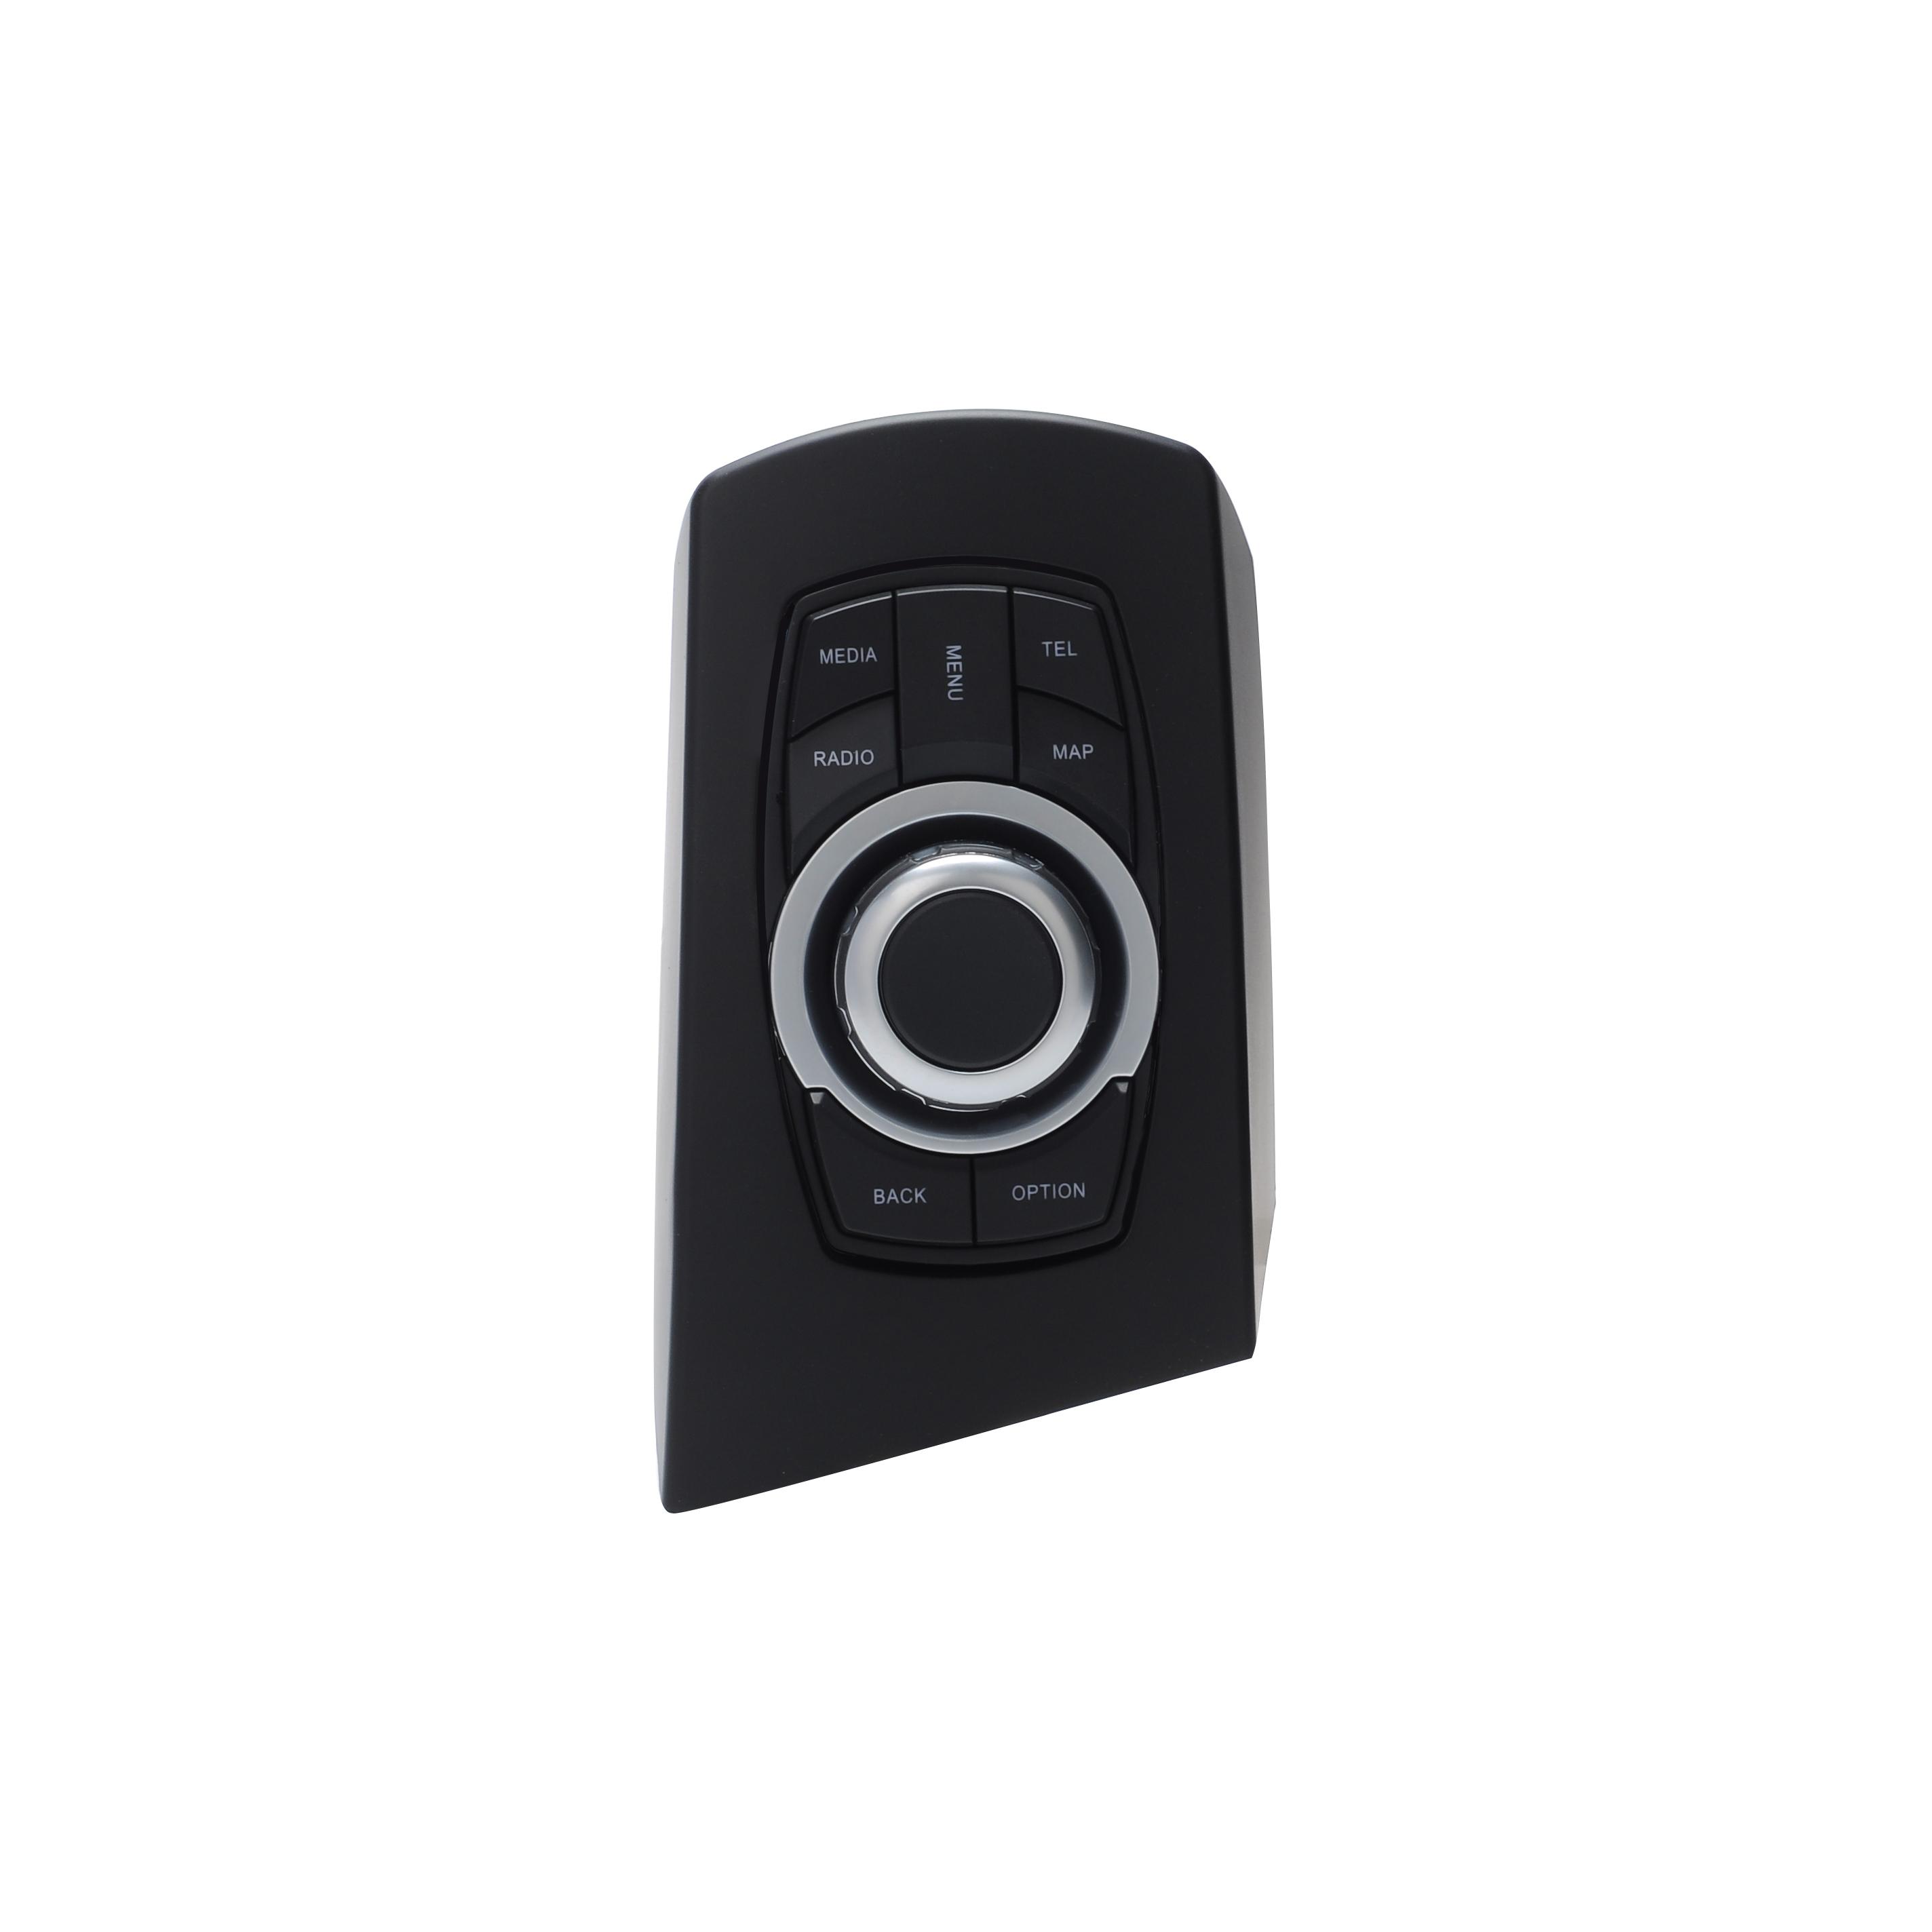 For BMW X3(E83) 2003 2004 2005 2006 2007 2008 2009 2010 IDrive Knob On The Storage Box ,Not Sold Separately,Cannot Be Used Alone